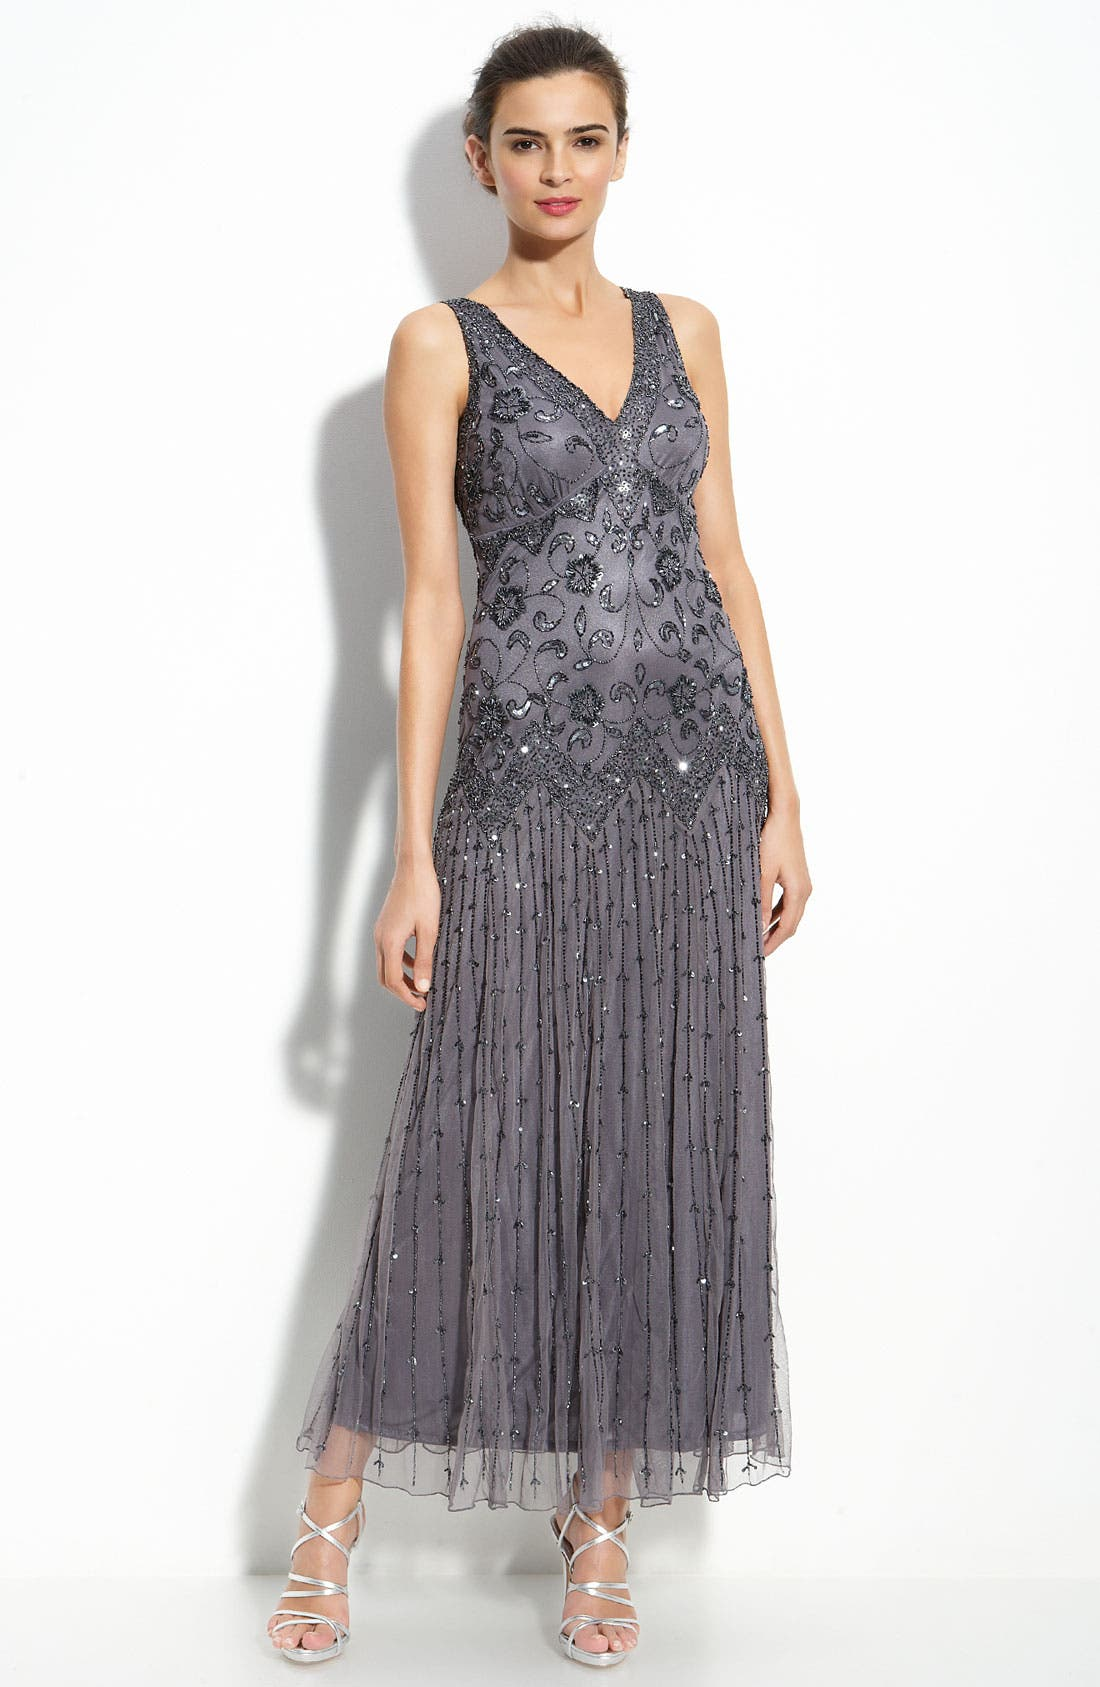 Main Image - Pisarro Nights Beaded Mesh Dress